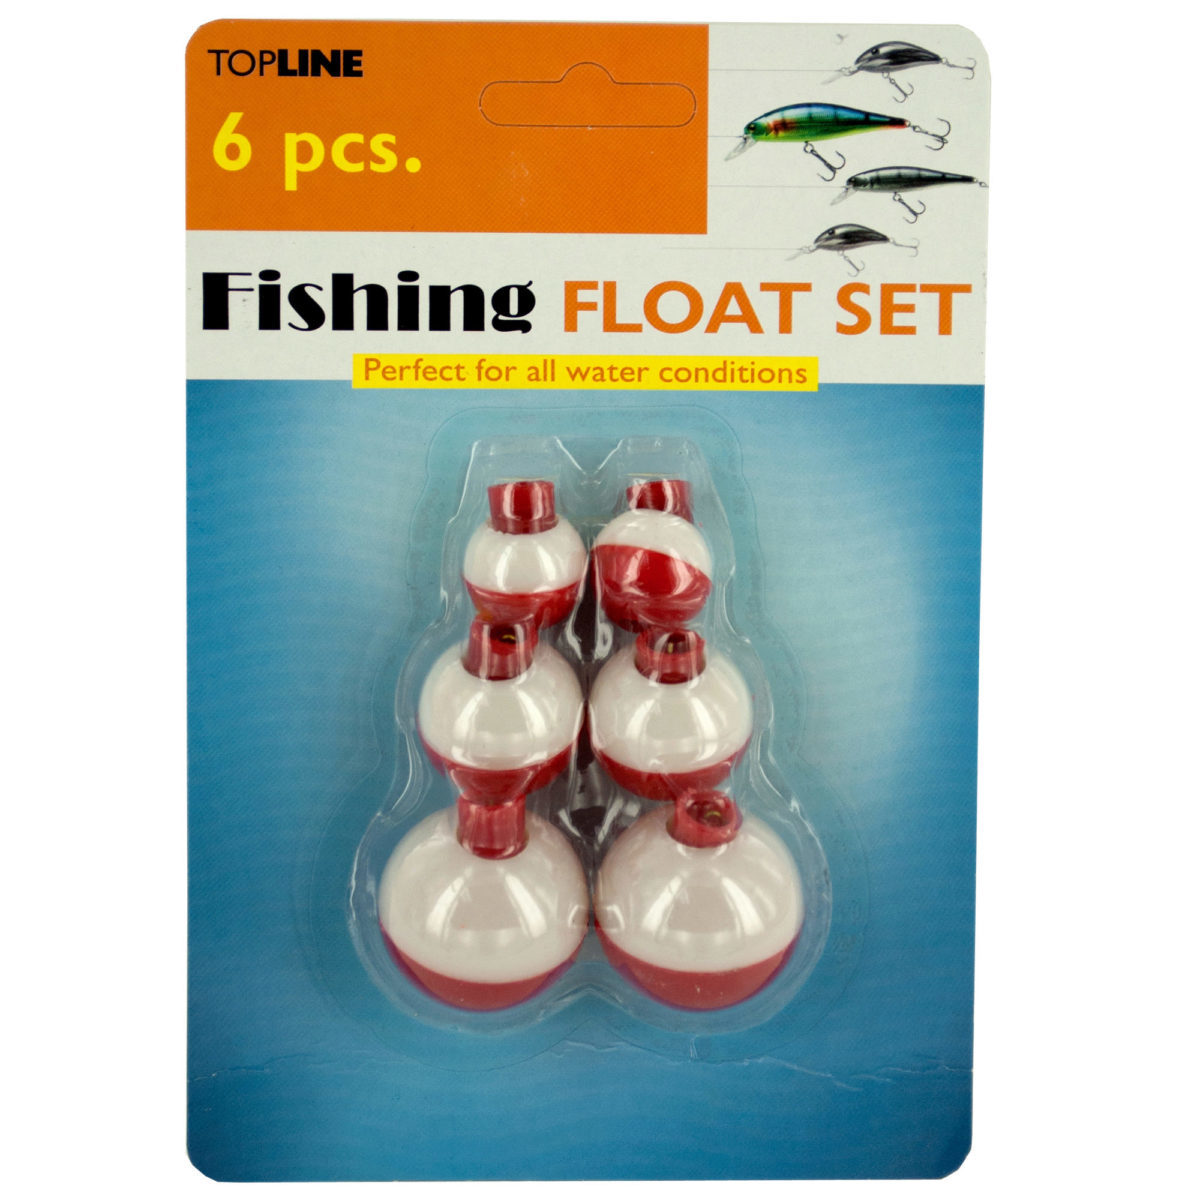 Wholesale fishing bobber floats set sku 2134608 dollardays for Fishing bobbers bulk